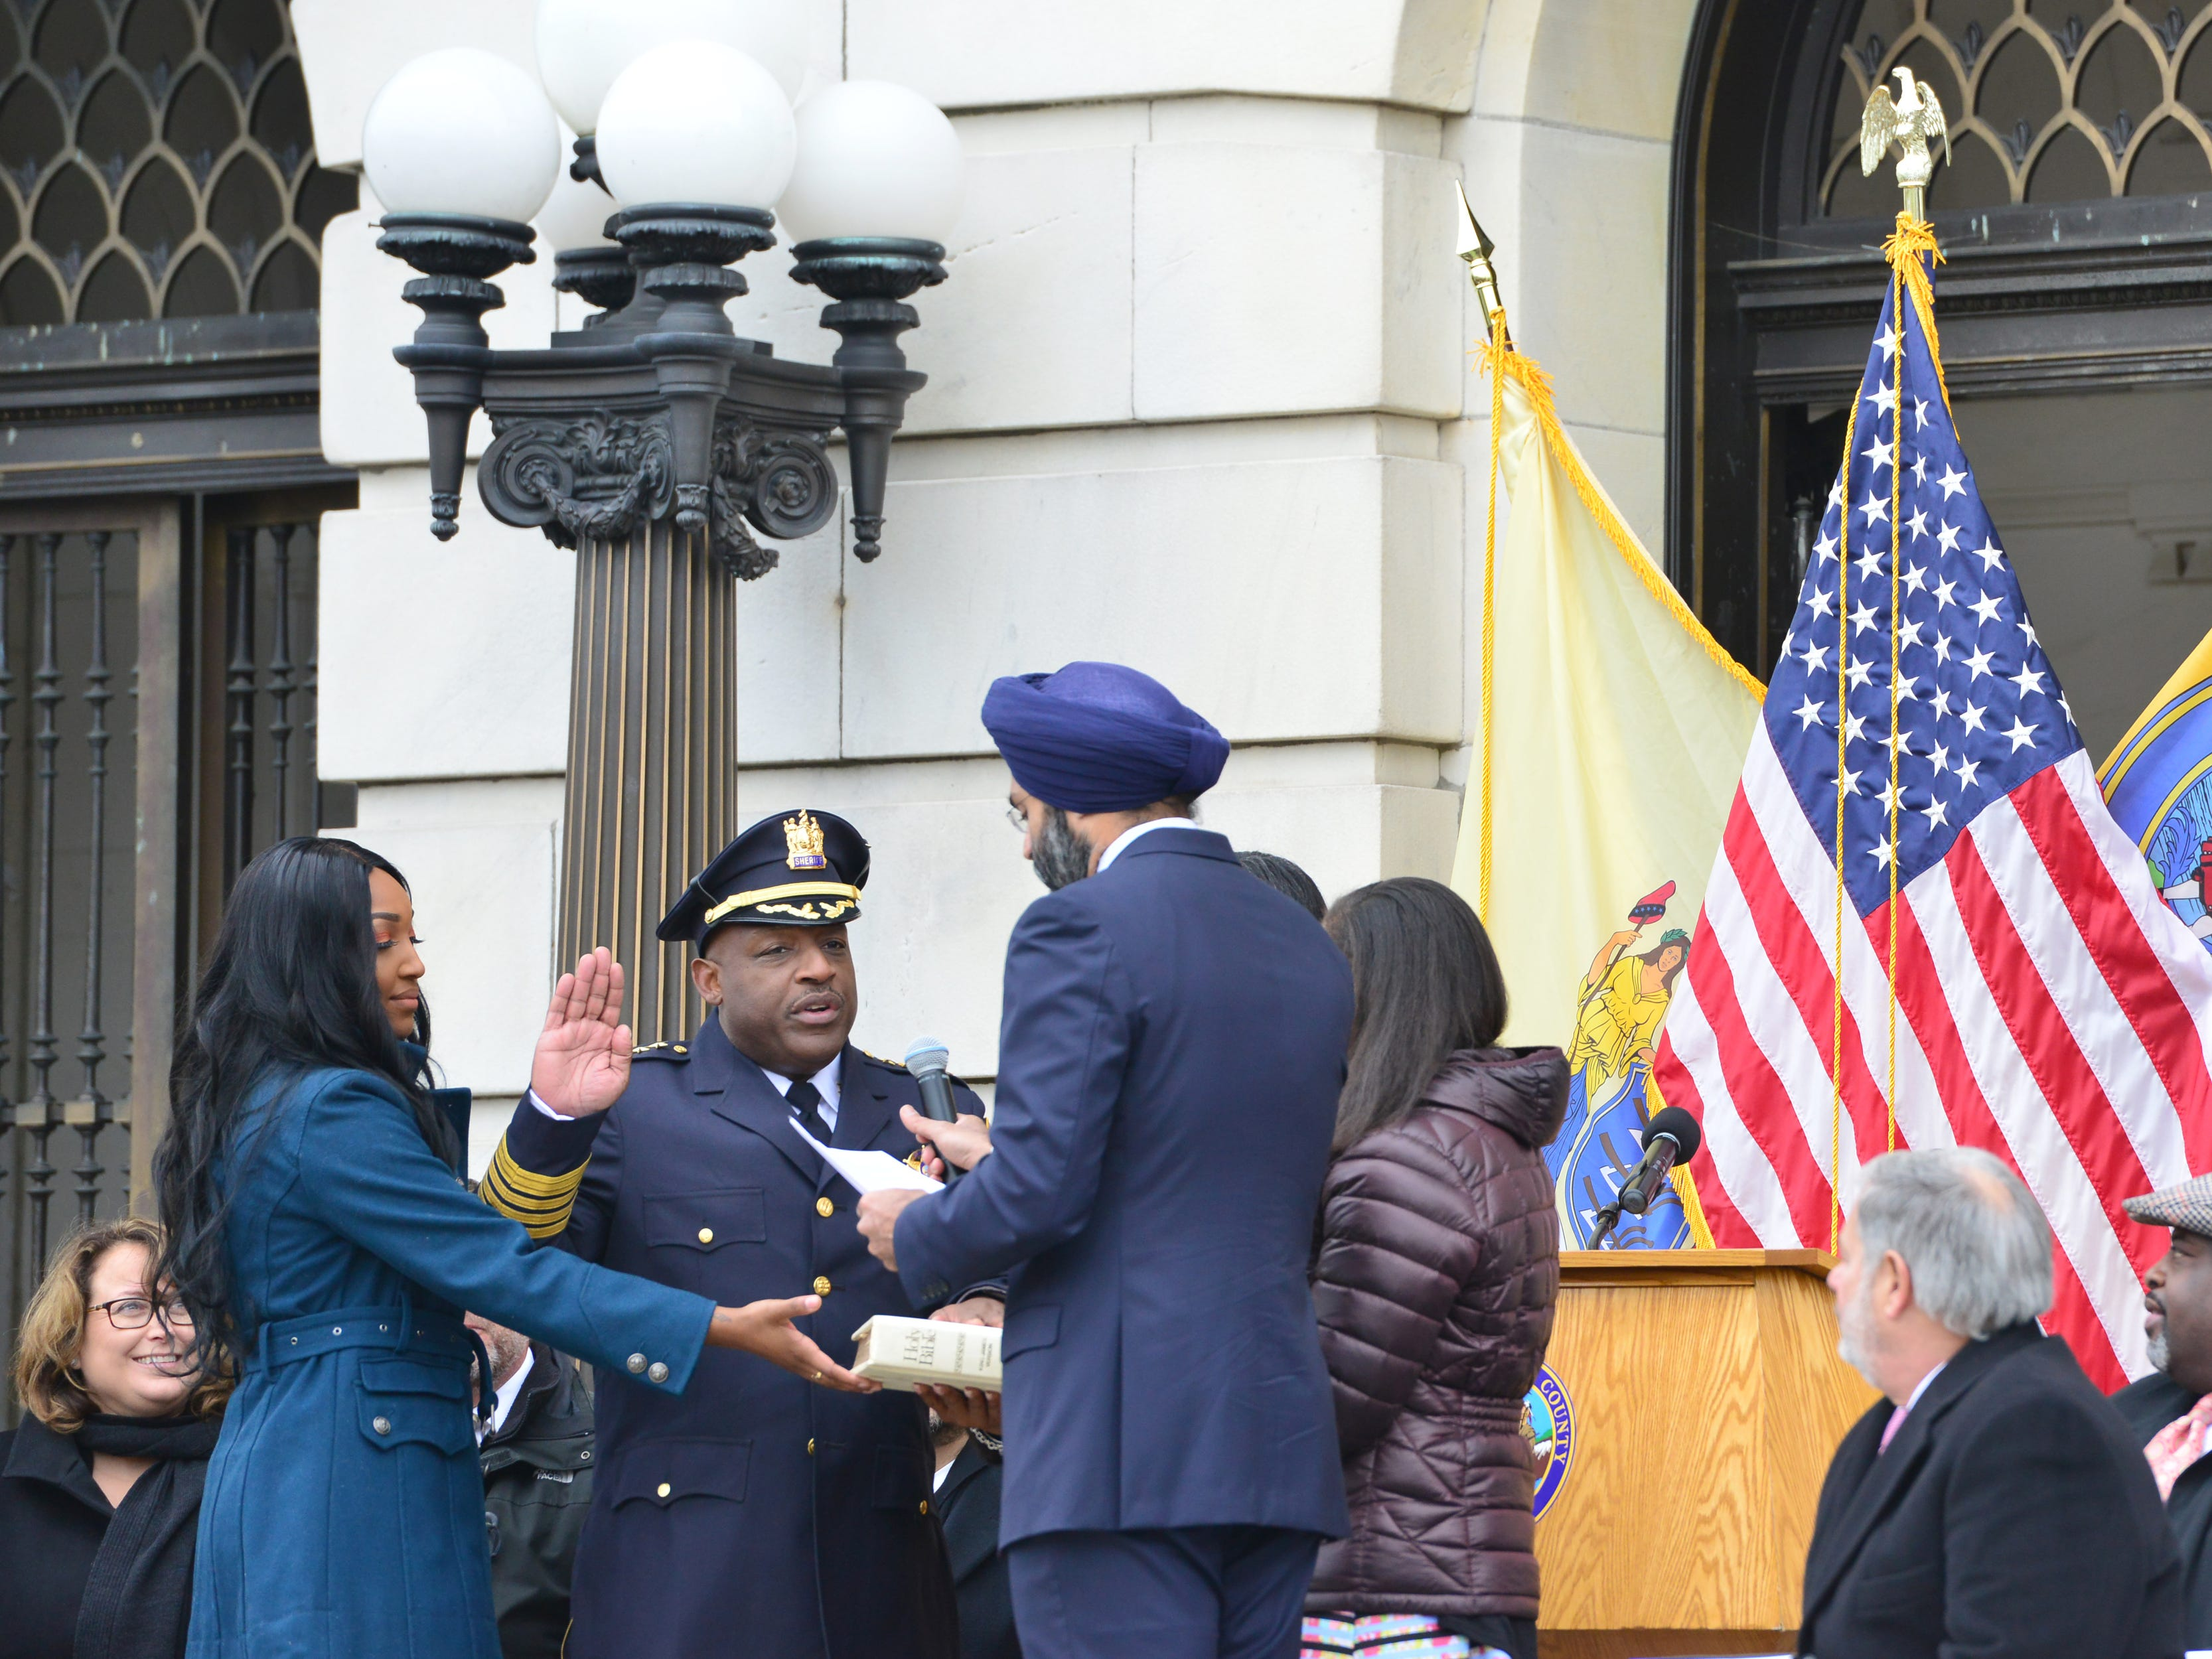 Bergen County swears in first elected African-American sheriff